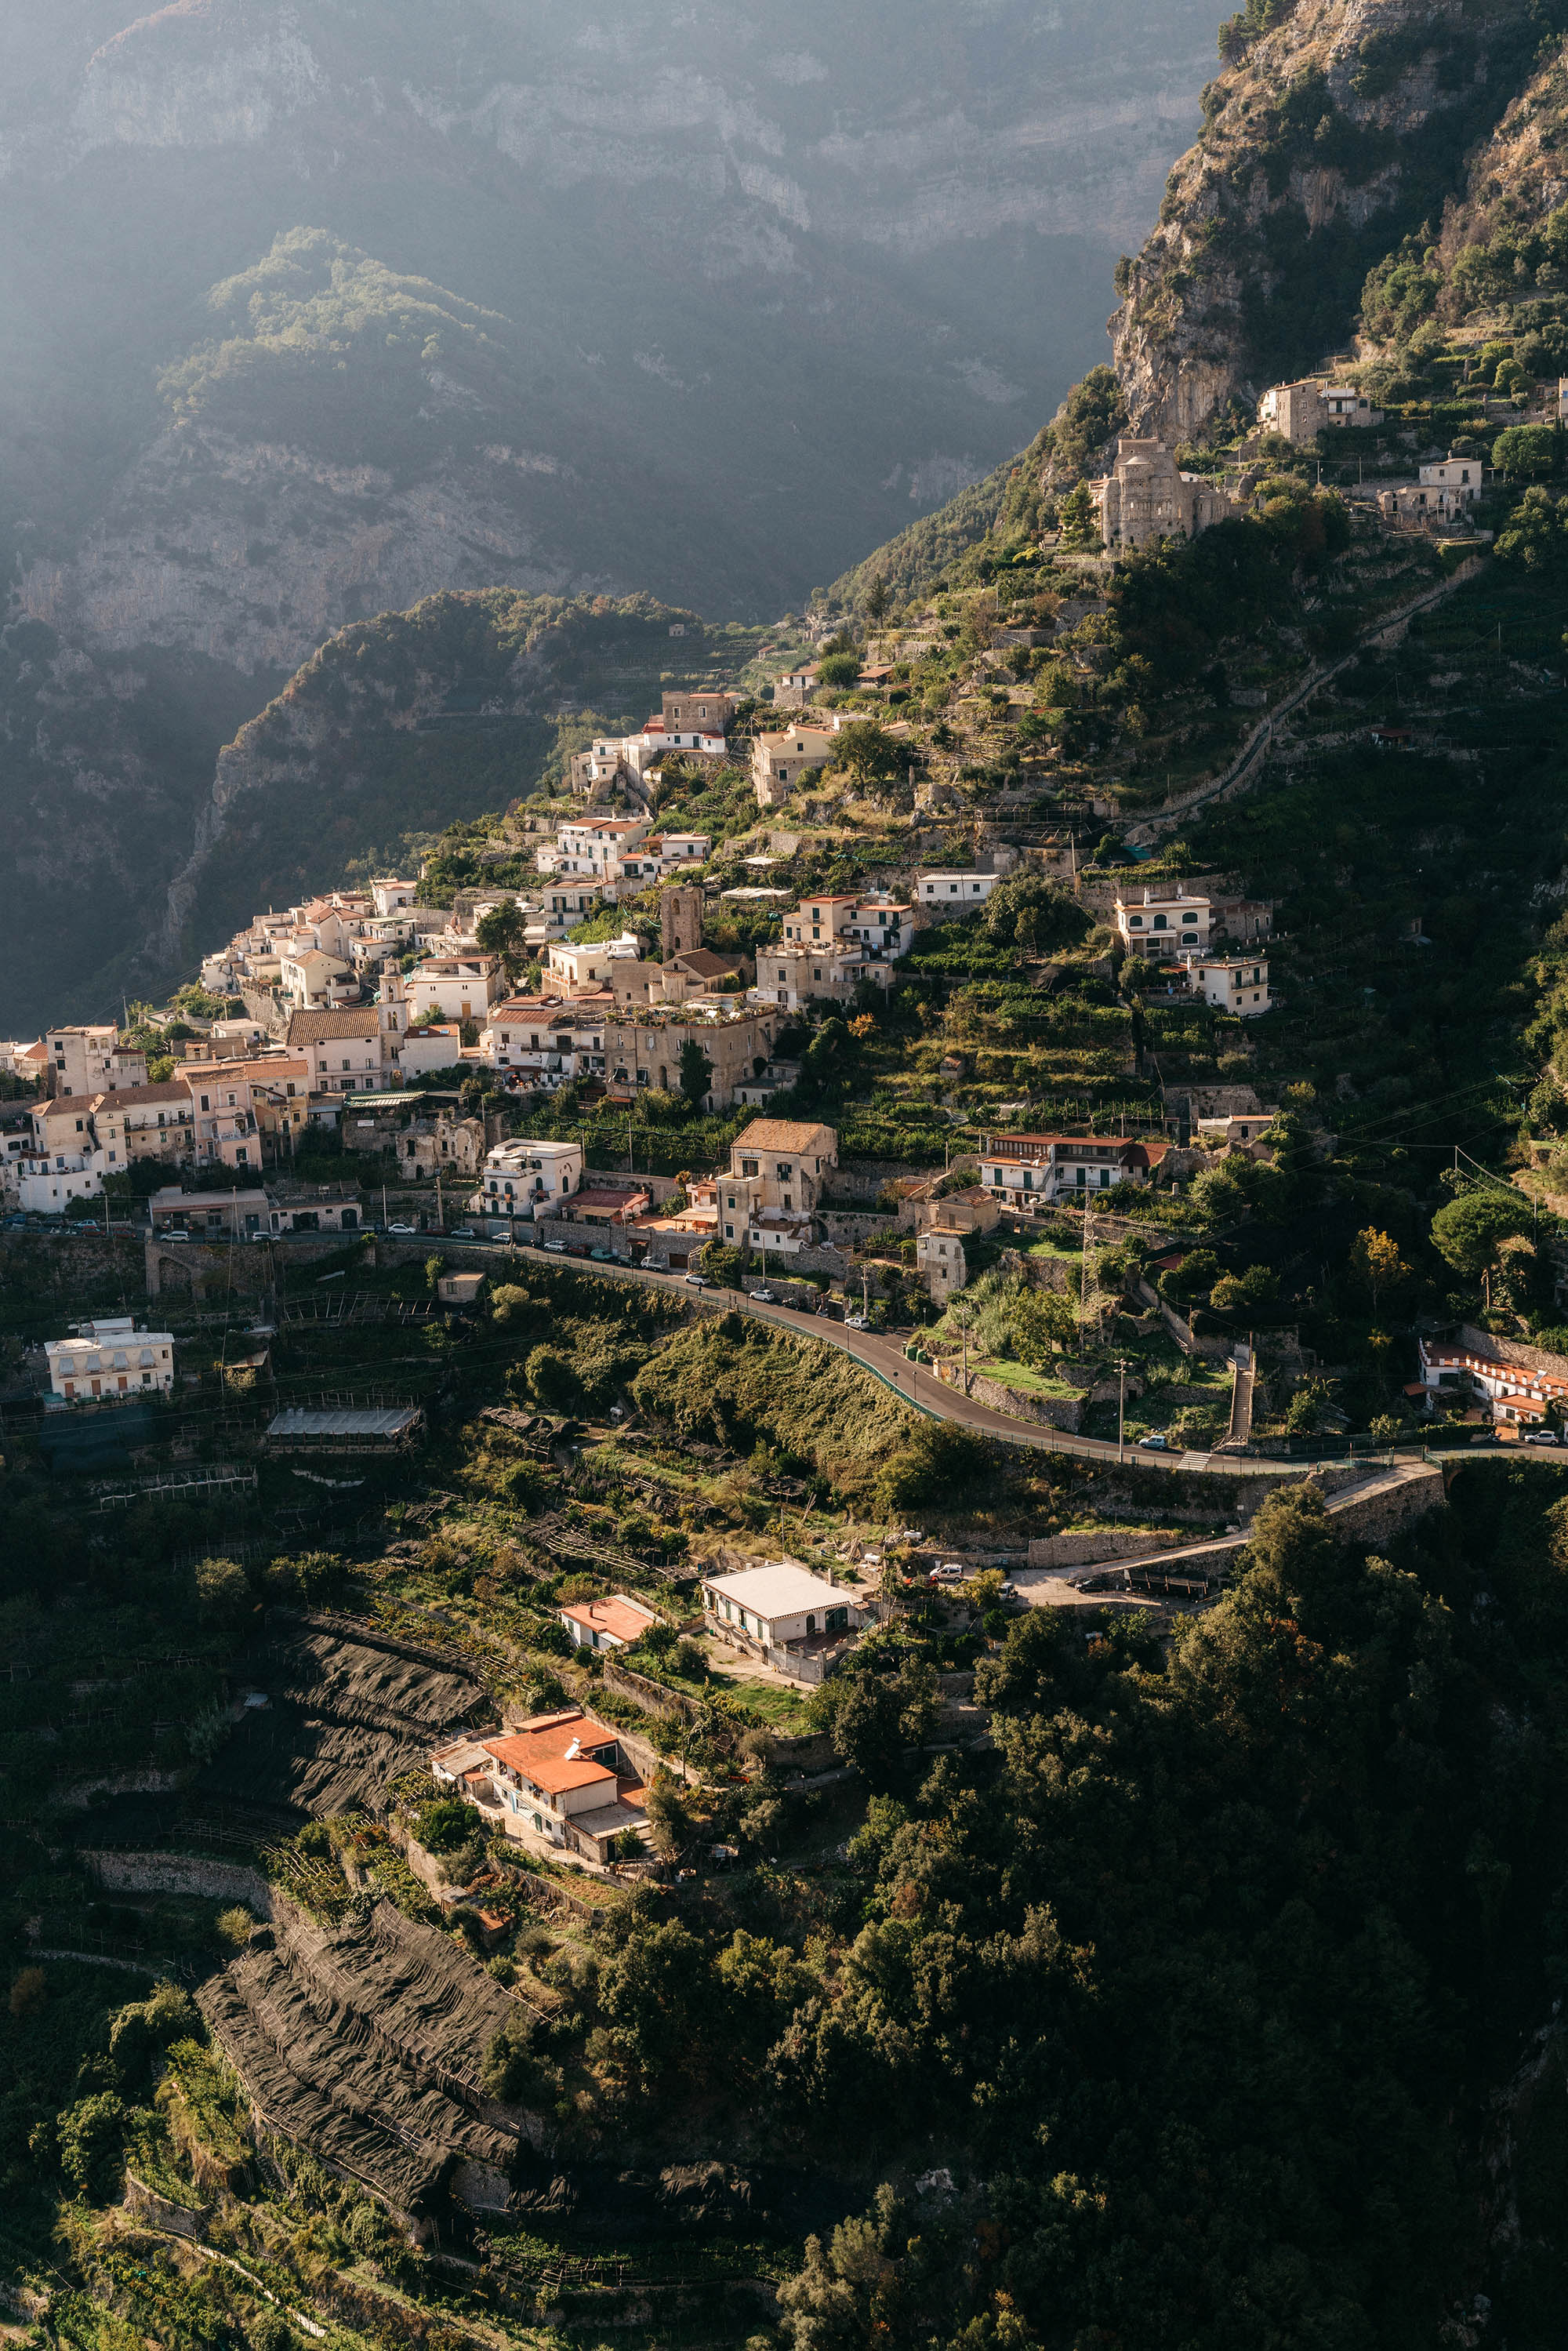 Views from Scala (the oldest village on the Amalfi Coast) from the quaint town of Ravello